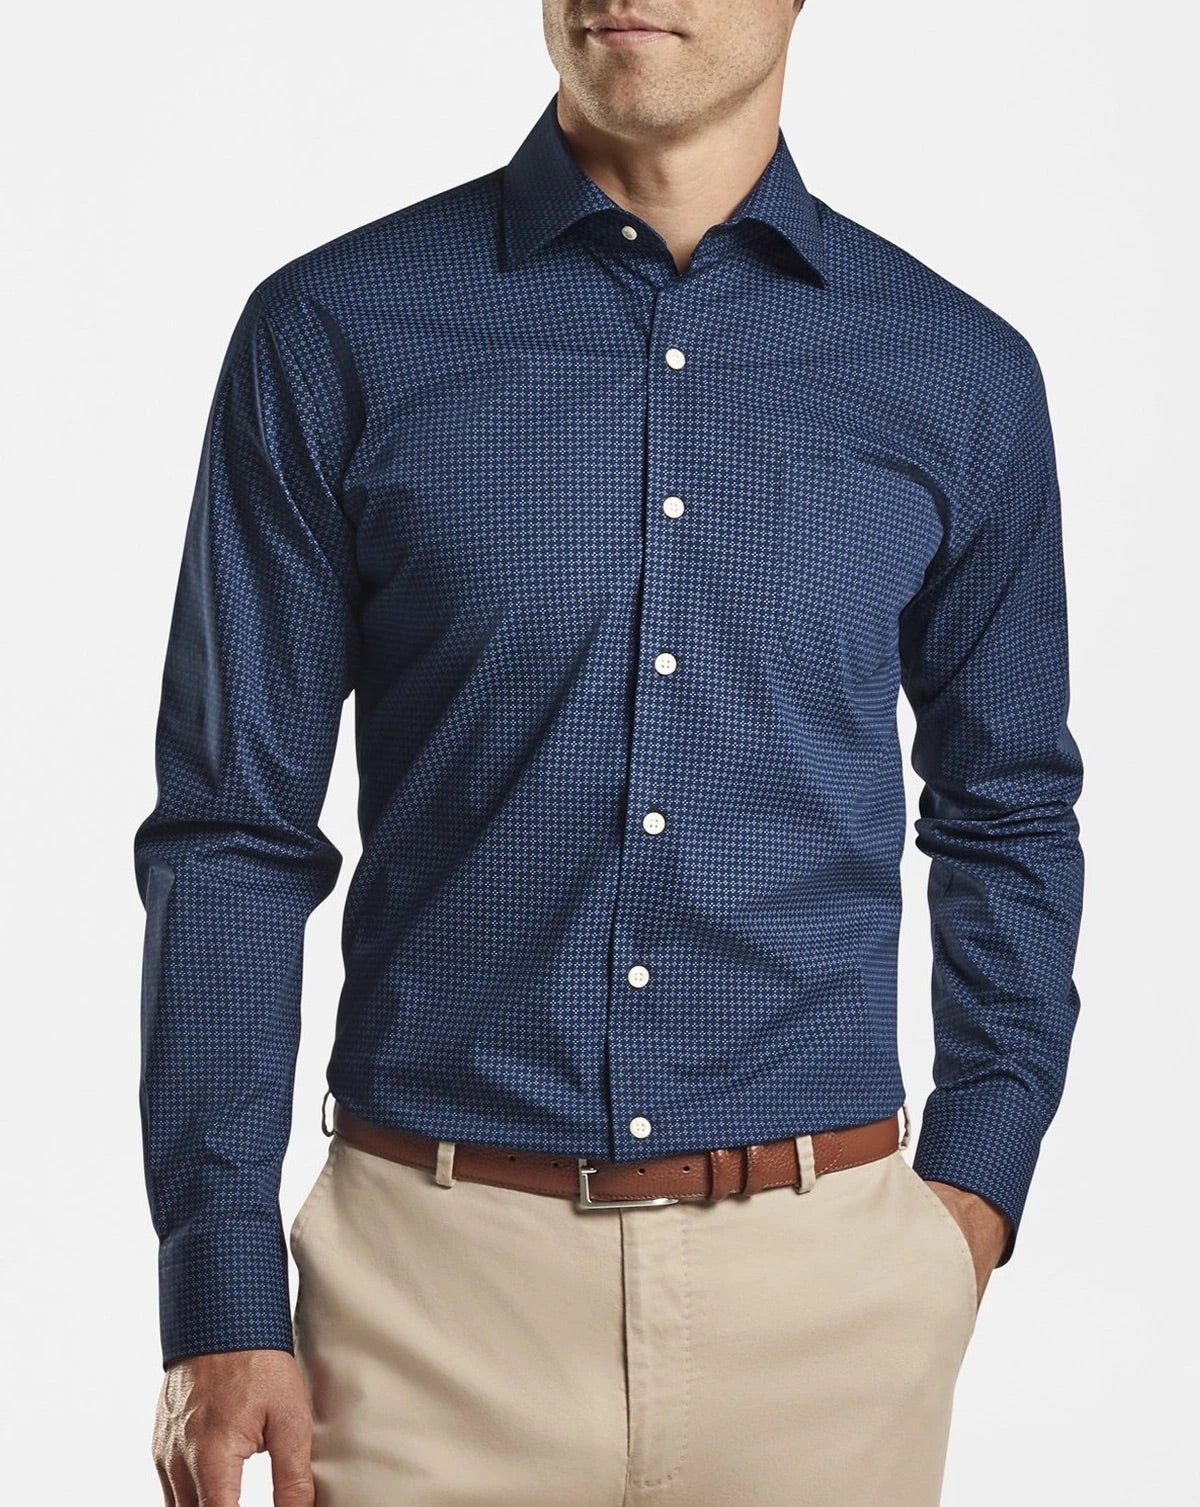 Peter Millar Midnight Cotton Blend Sport Shirt MF20W14CSL